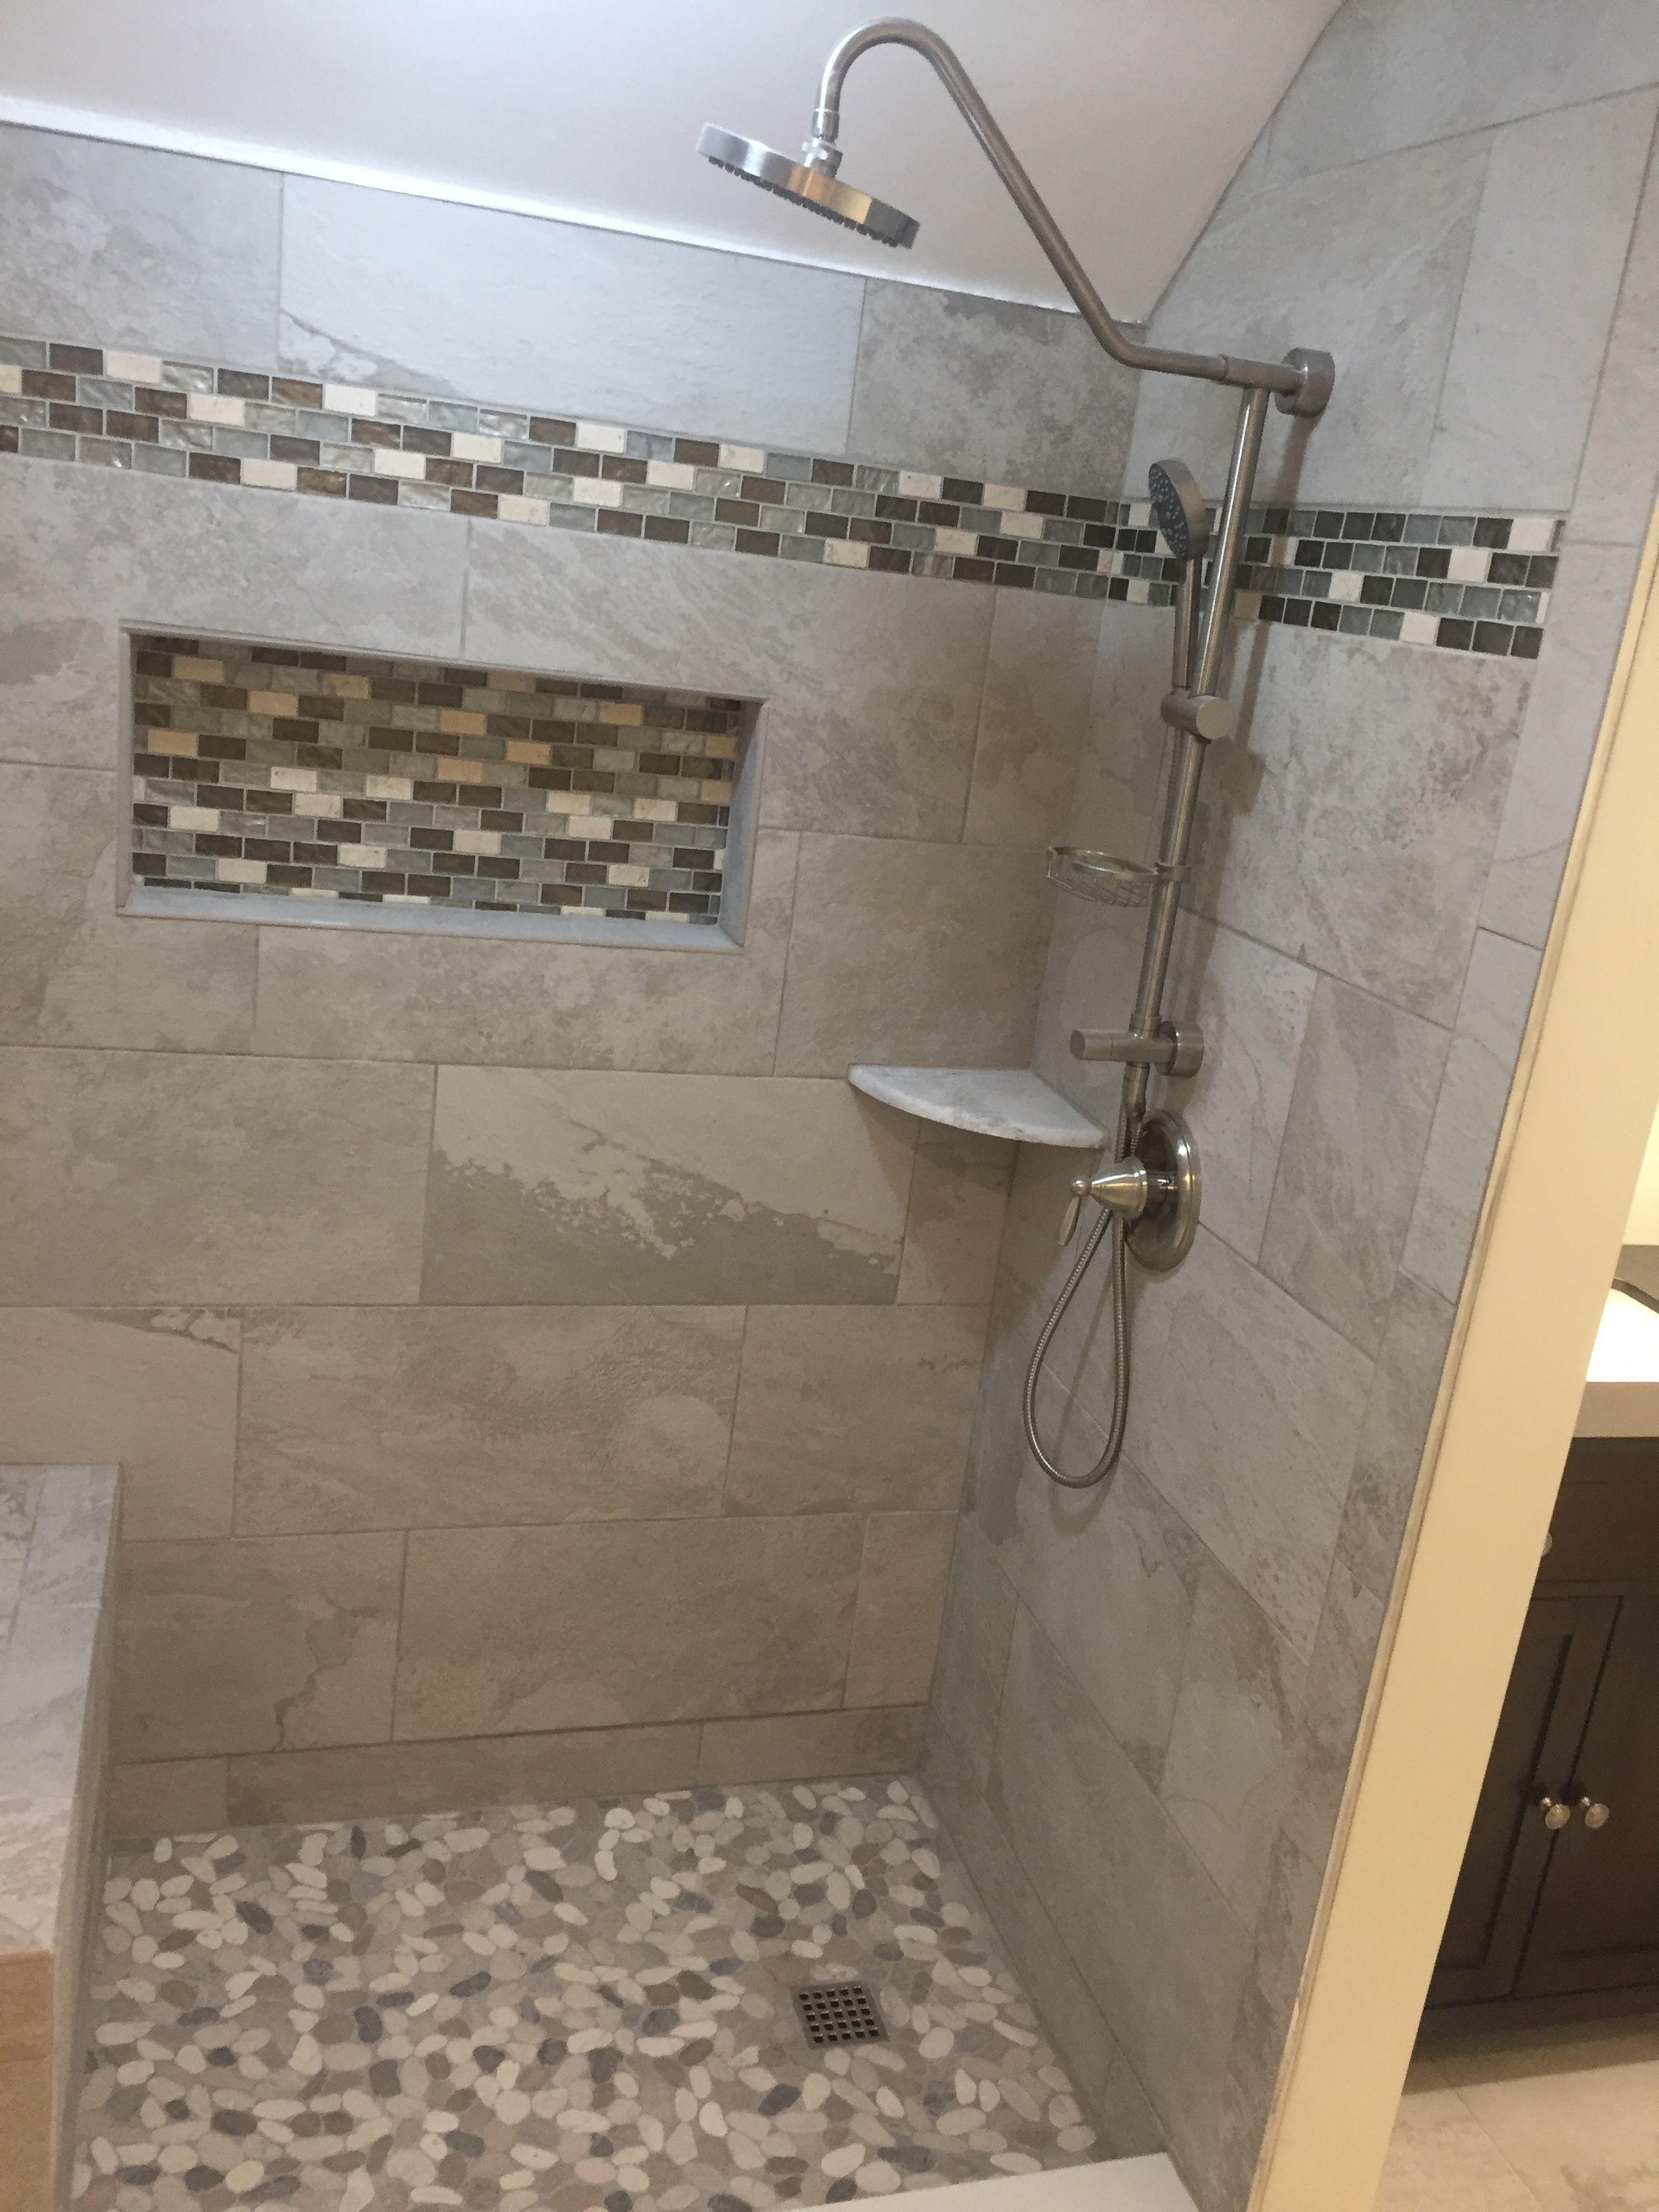 Mosaic Border Using The Durock Shower